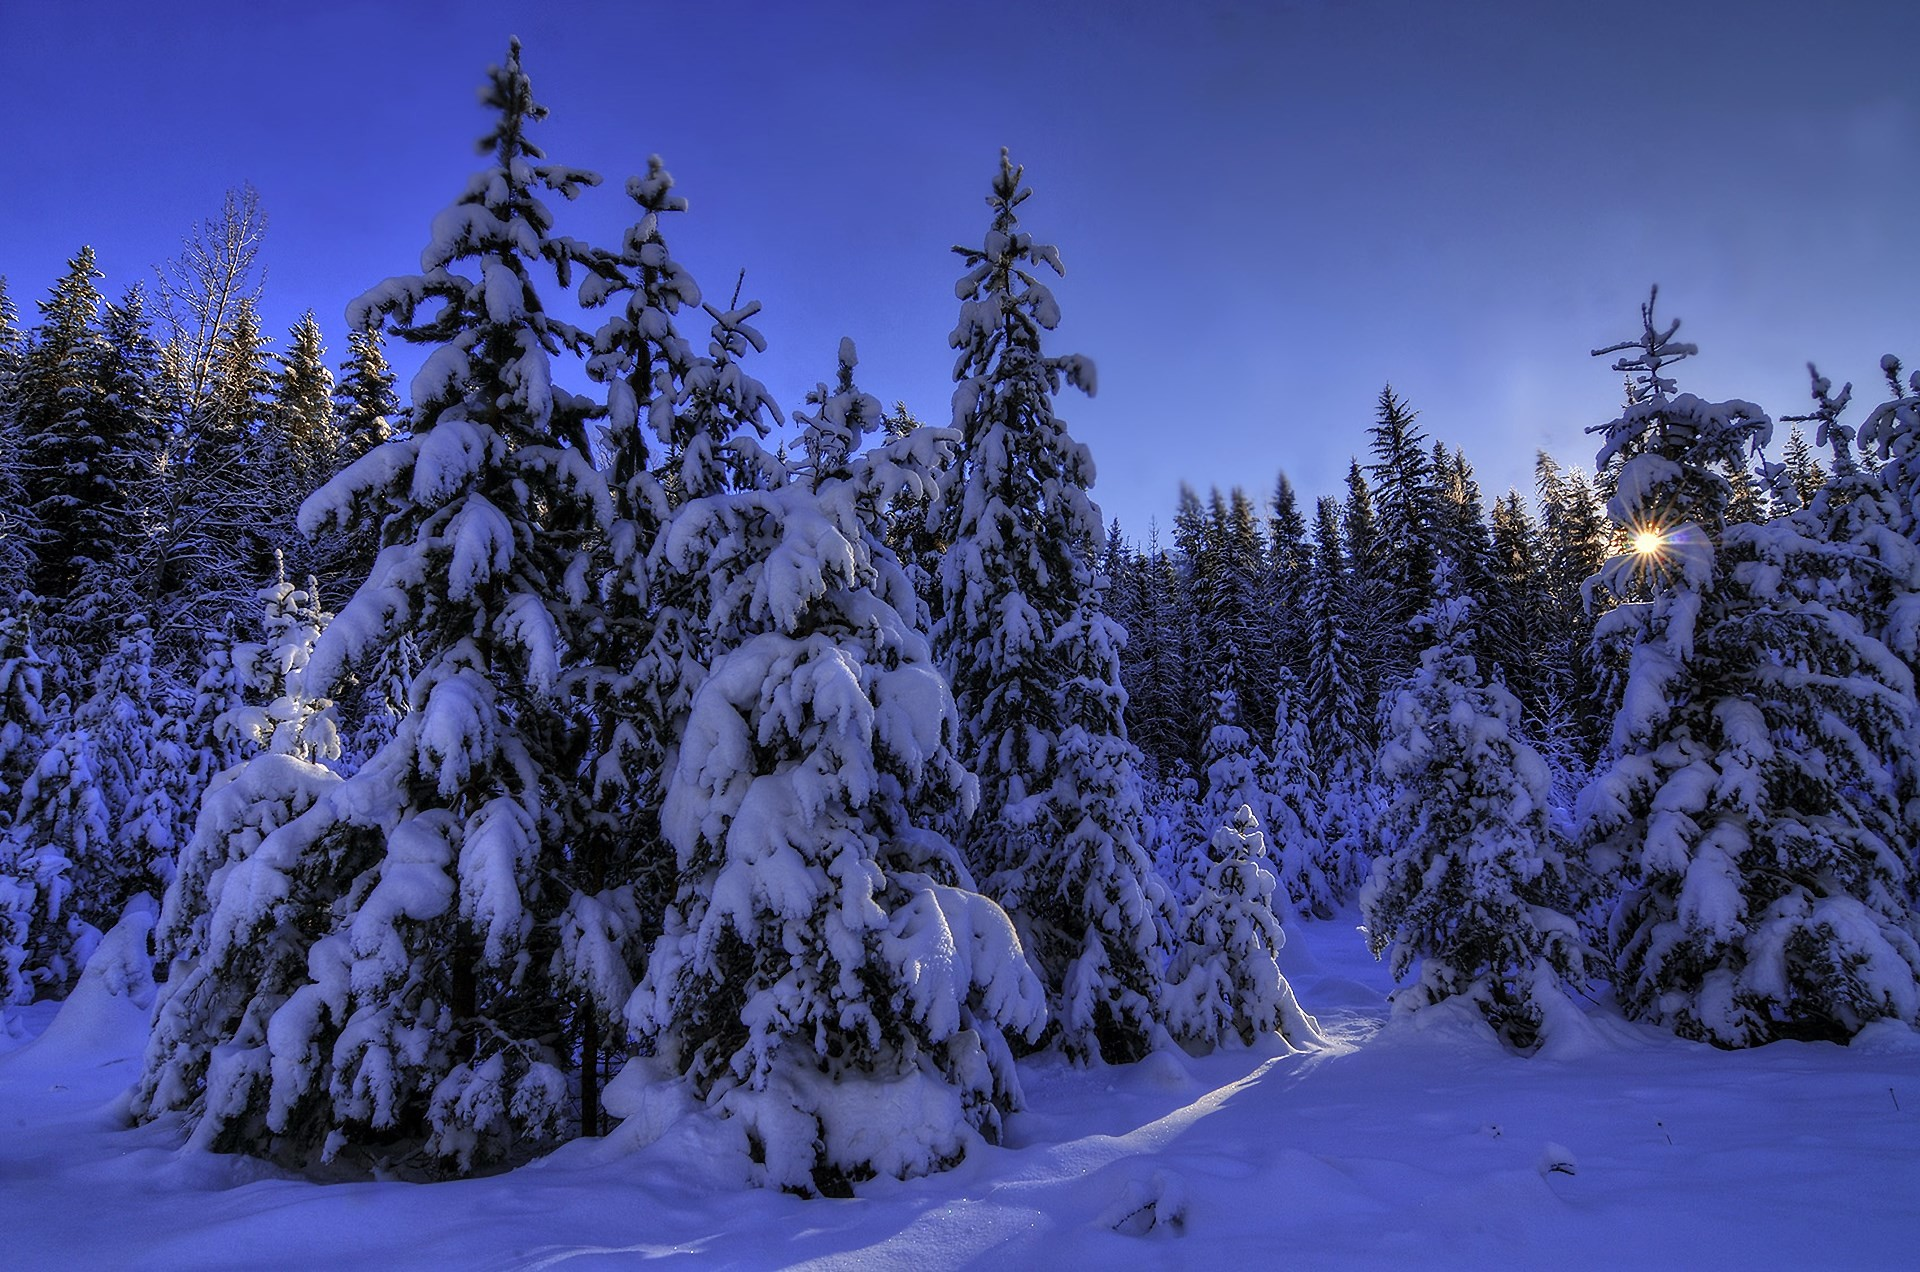 1920x1272 2017-03-25 - winter theme background images, #1656363